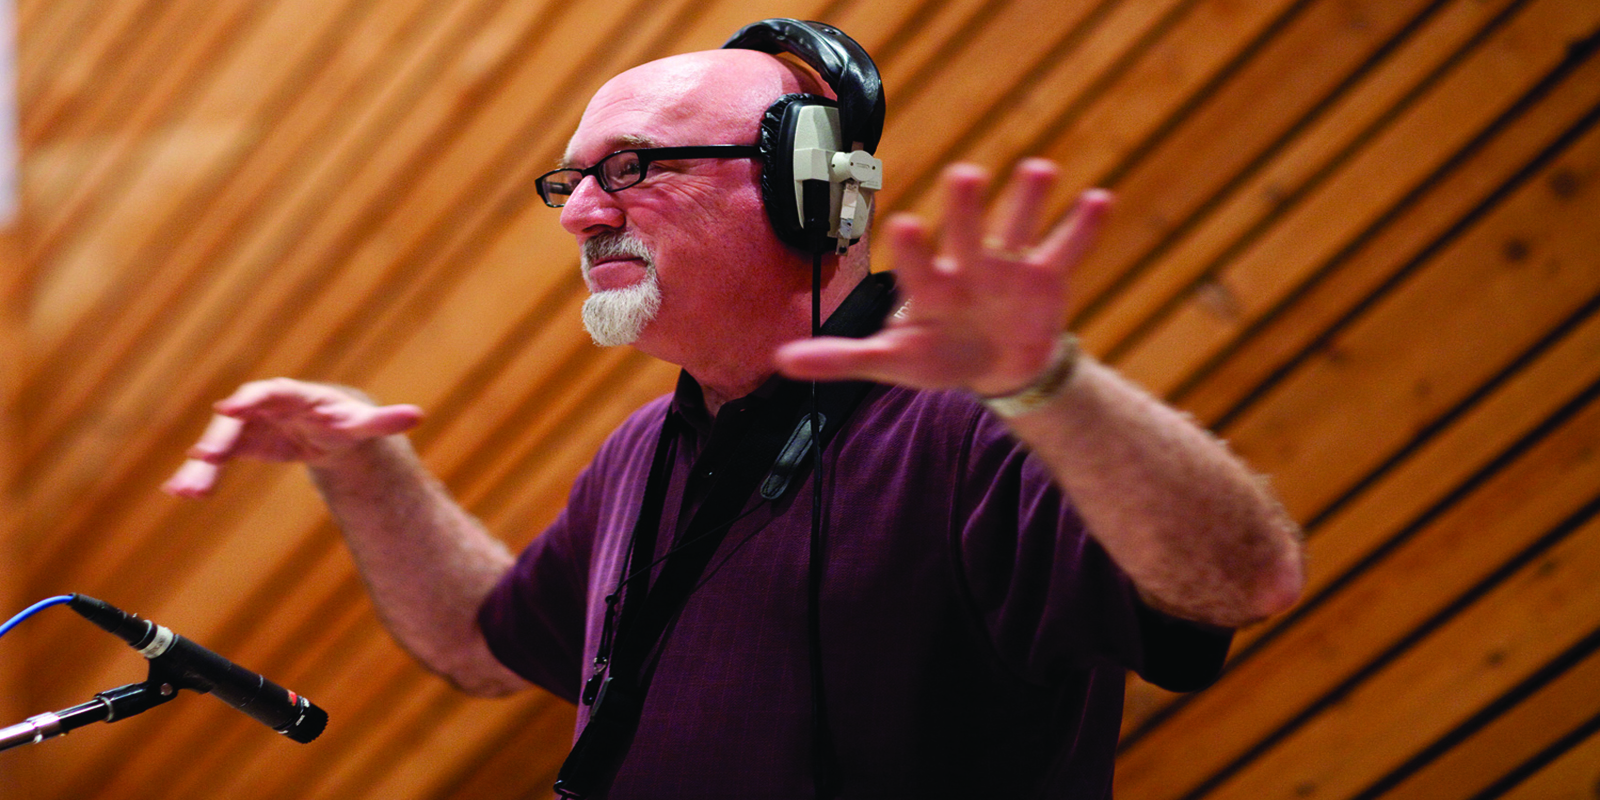 Frank Macchia conducts Folk Songs For Jazzers session